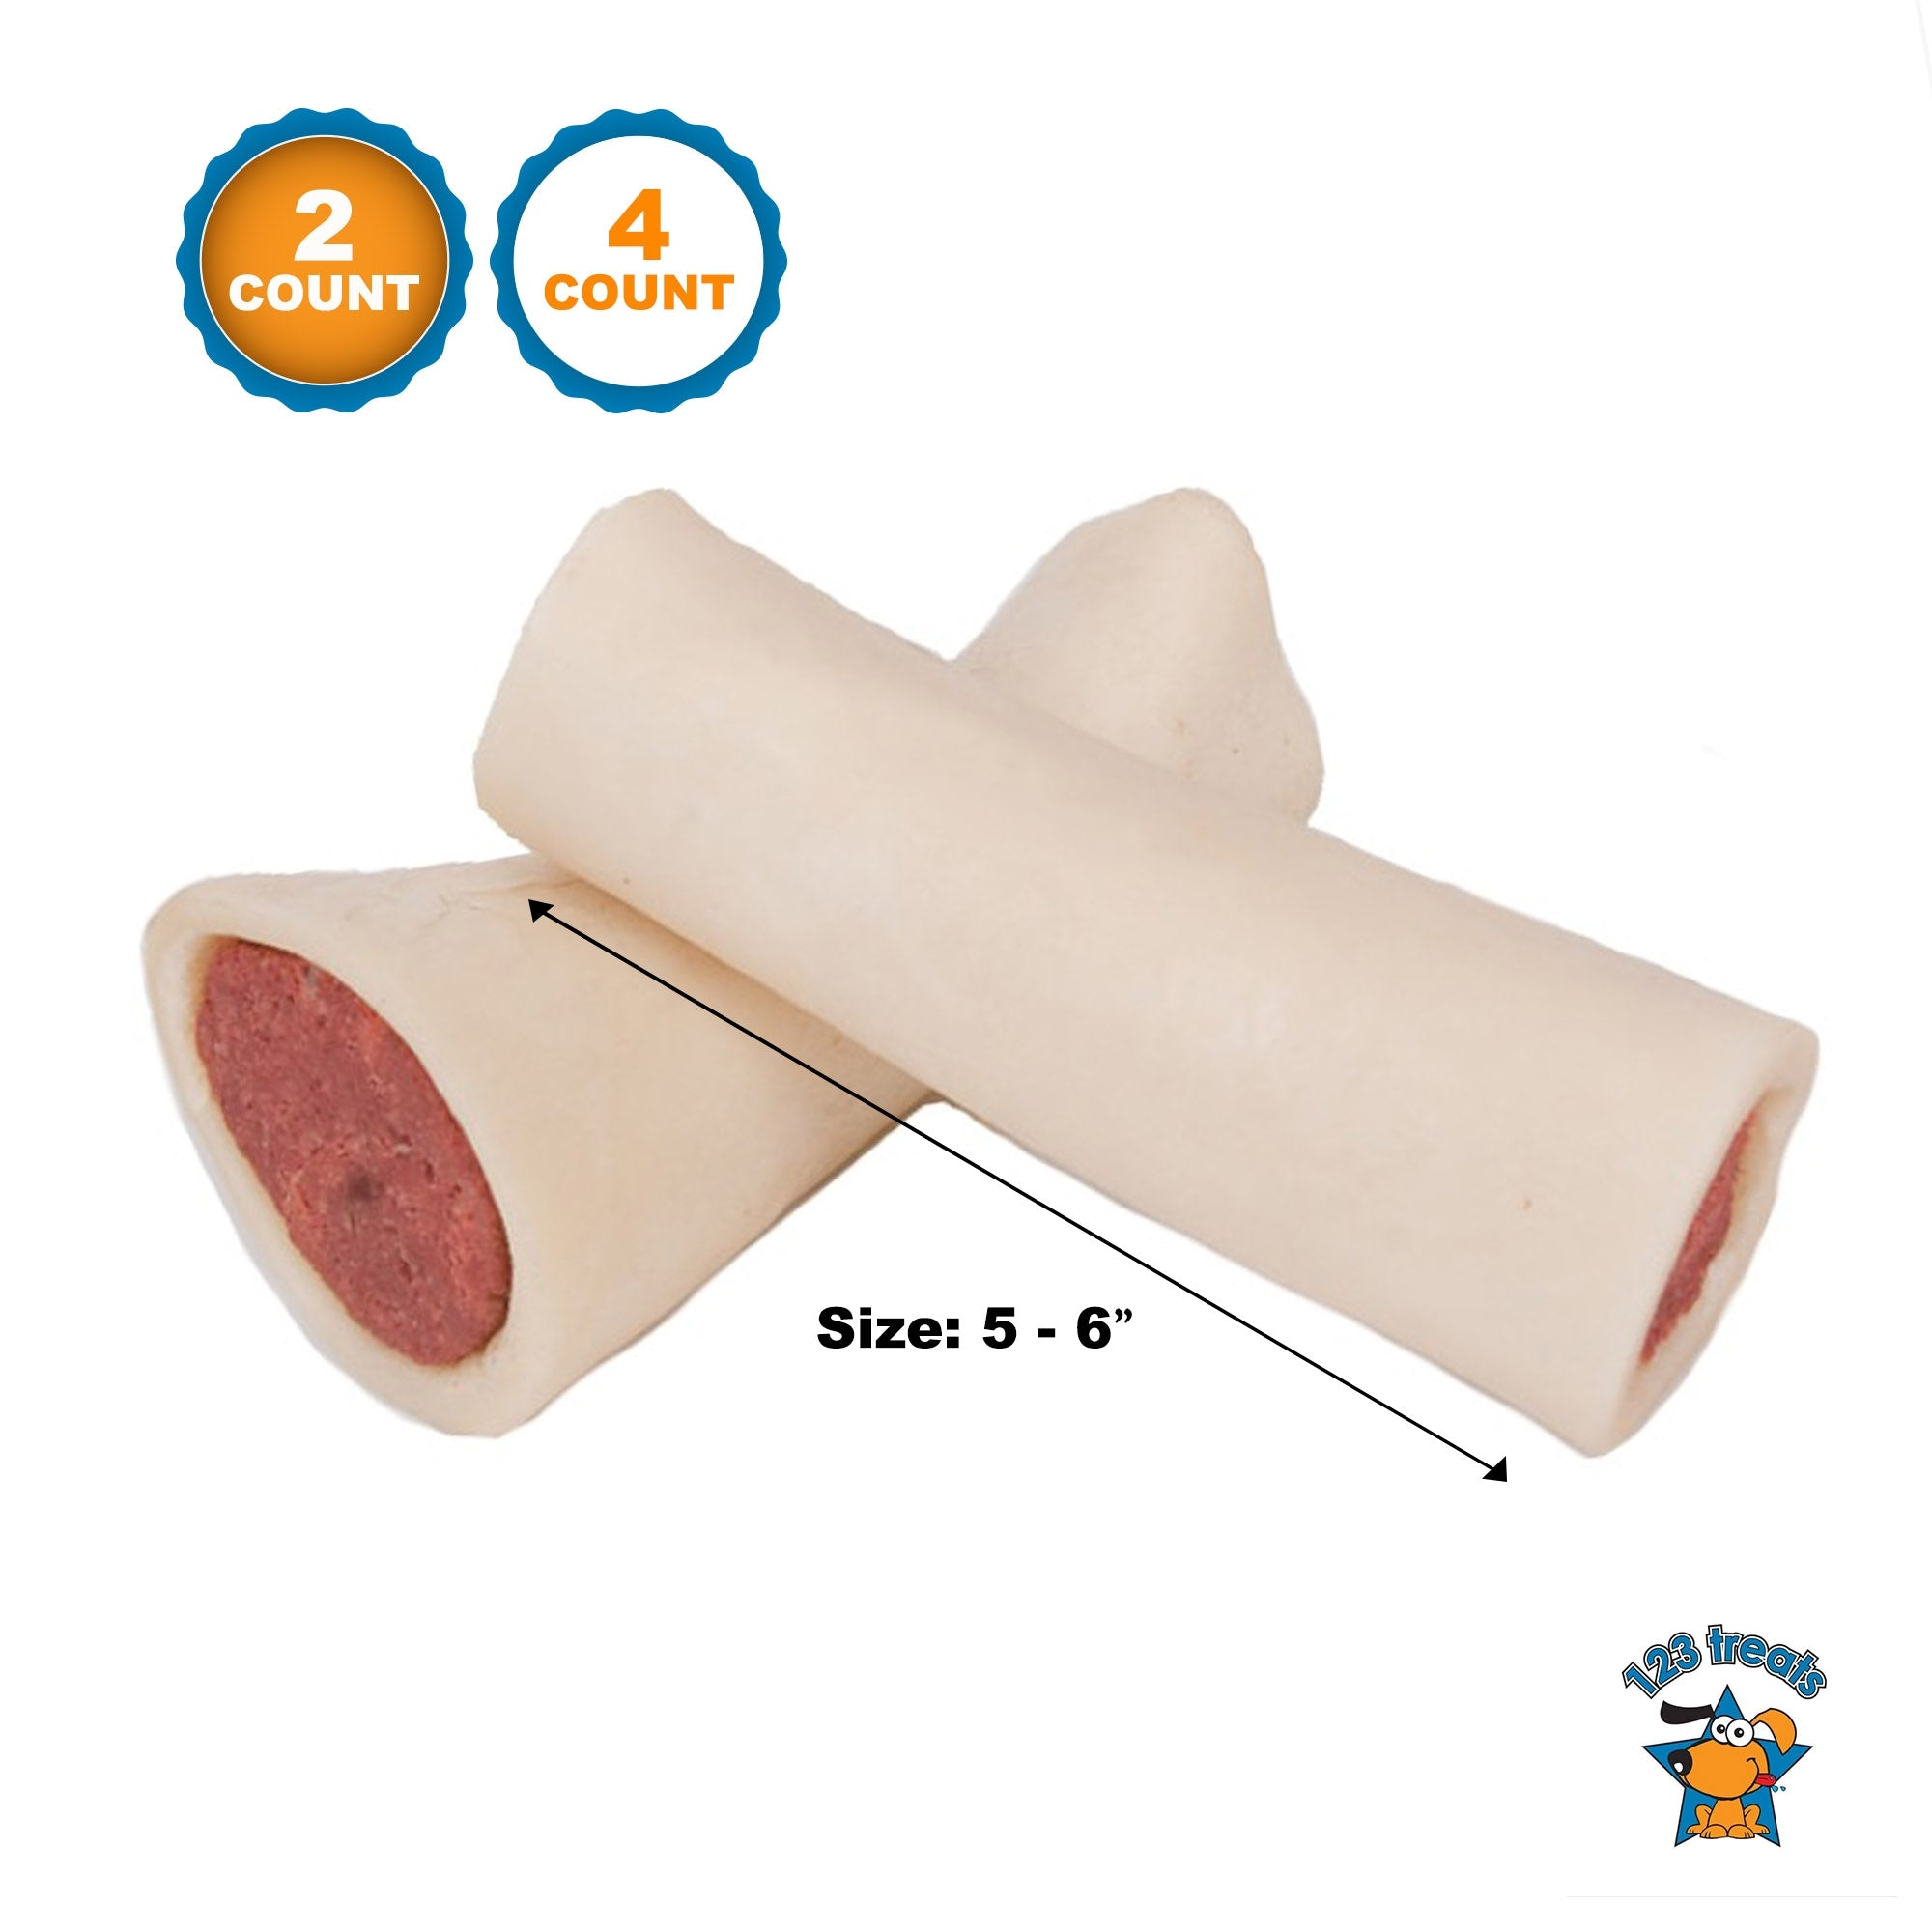 "FILLED DOG BONES 5-6 "" with Peanut Butter Flavor 2 or 4  Count"